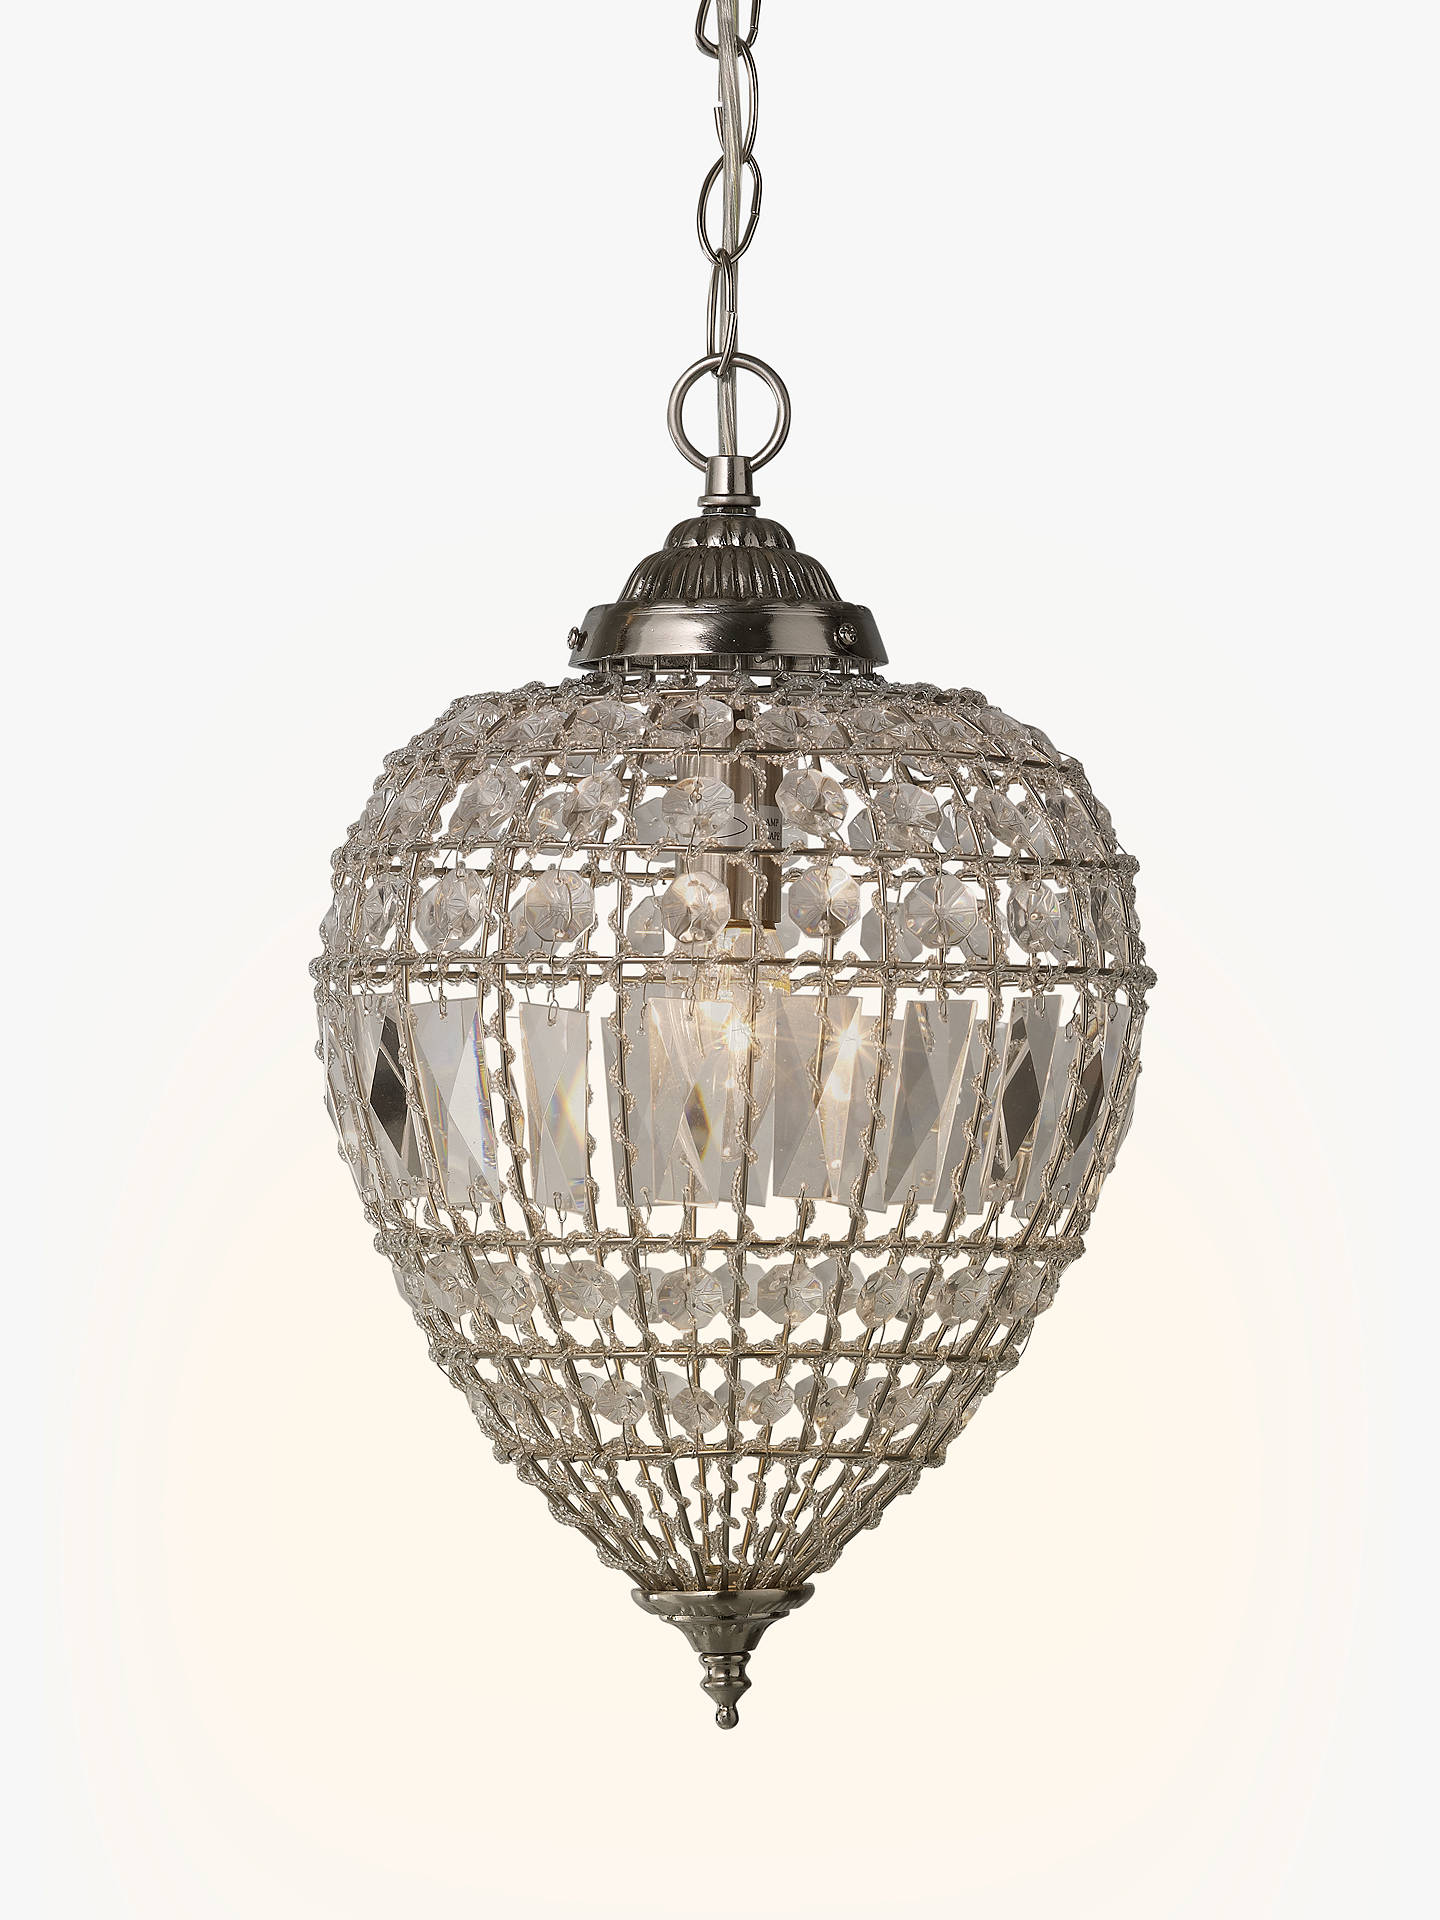 BuyJohn Lewis & Partners Dante Small Chandelier Pendant Online at johnlewis.com